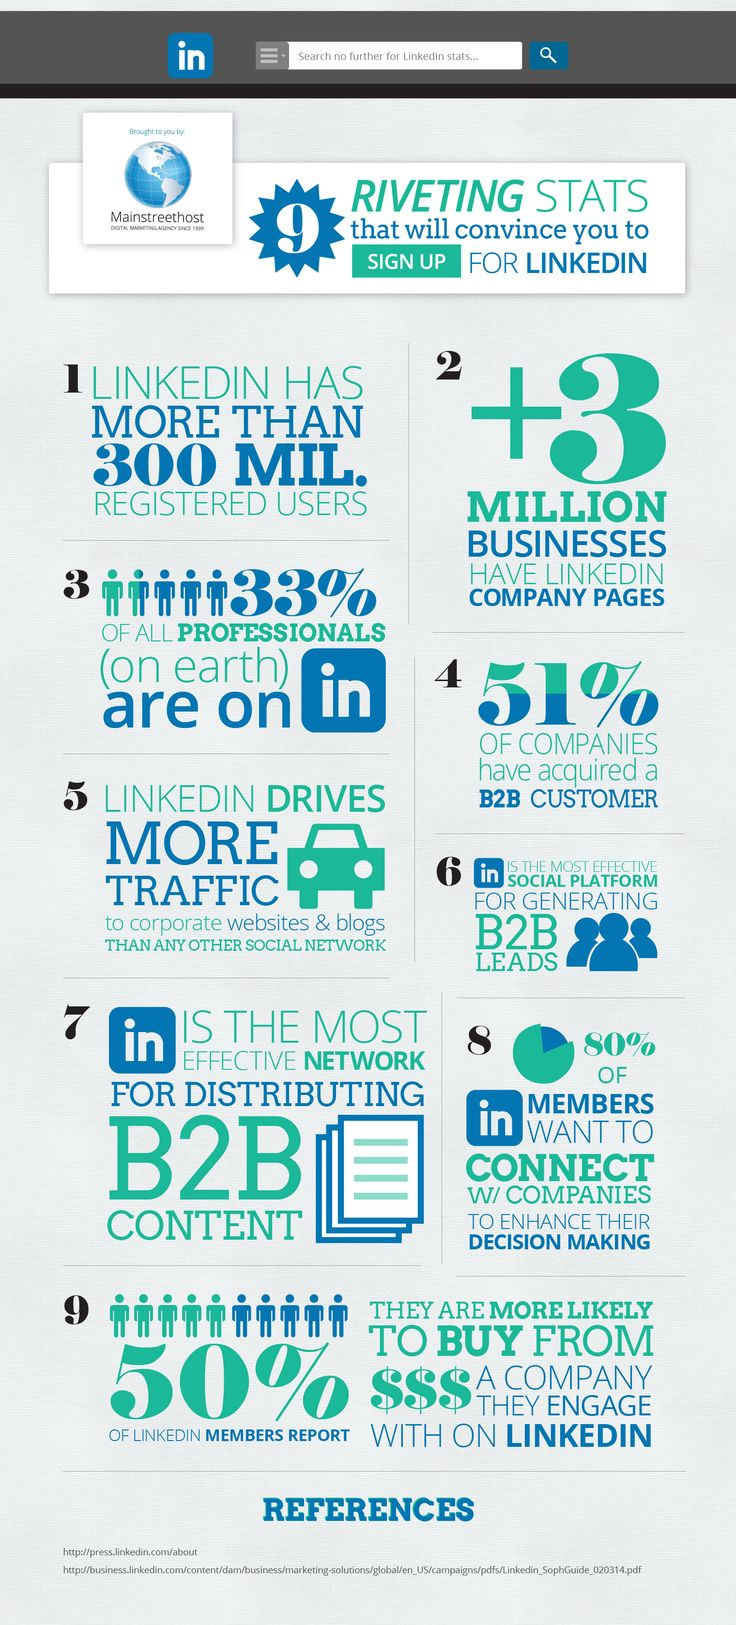 9 Riveting Stats that Will Convince you to Sign Up for LinkedIn Immediately #infographic #LinkedIn